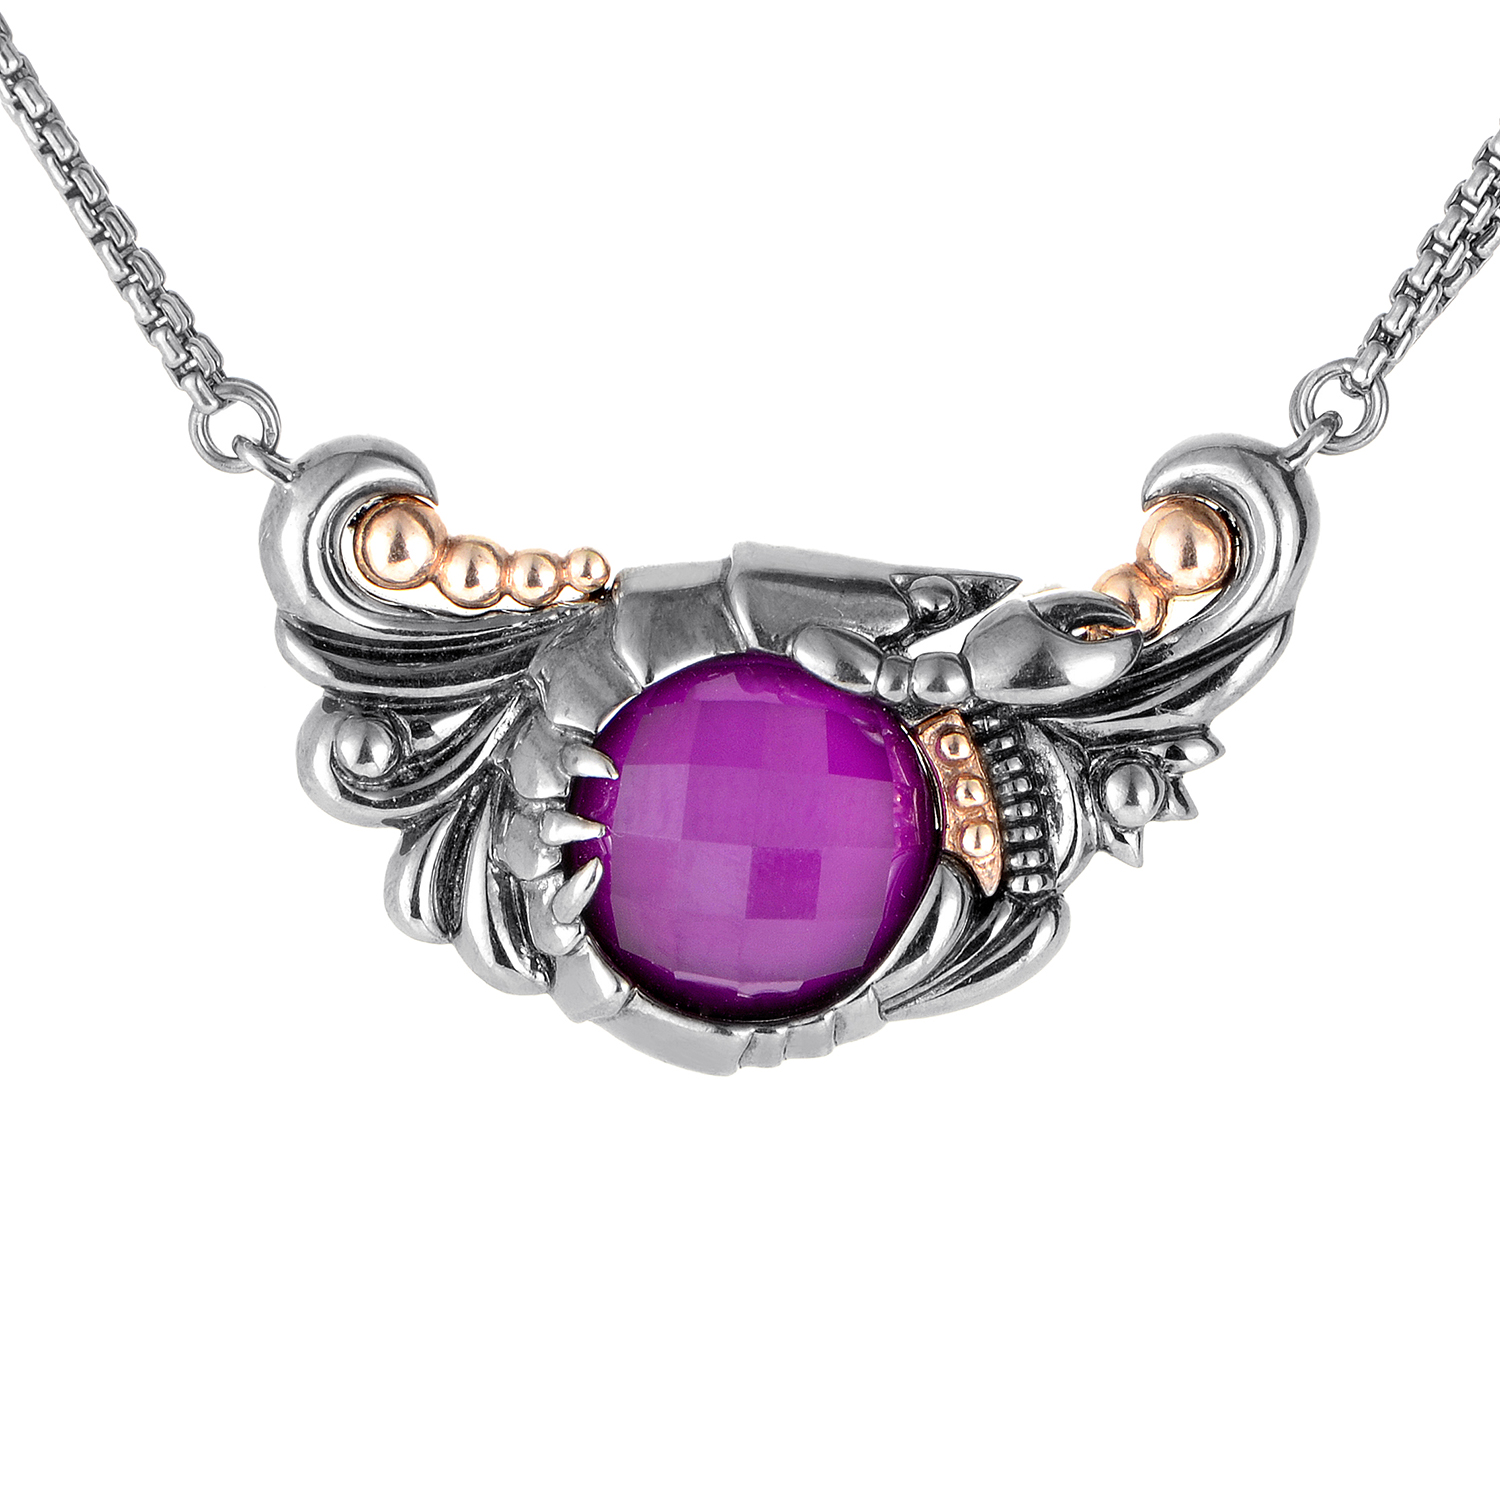 Jewels Verne Silver Quartz & Sugilite Pendant Necklace